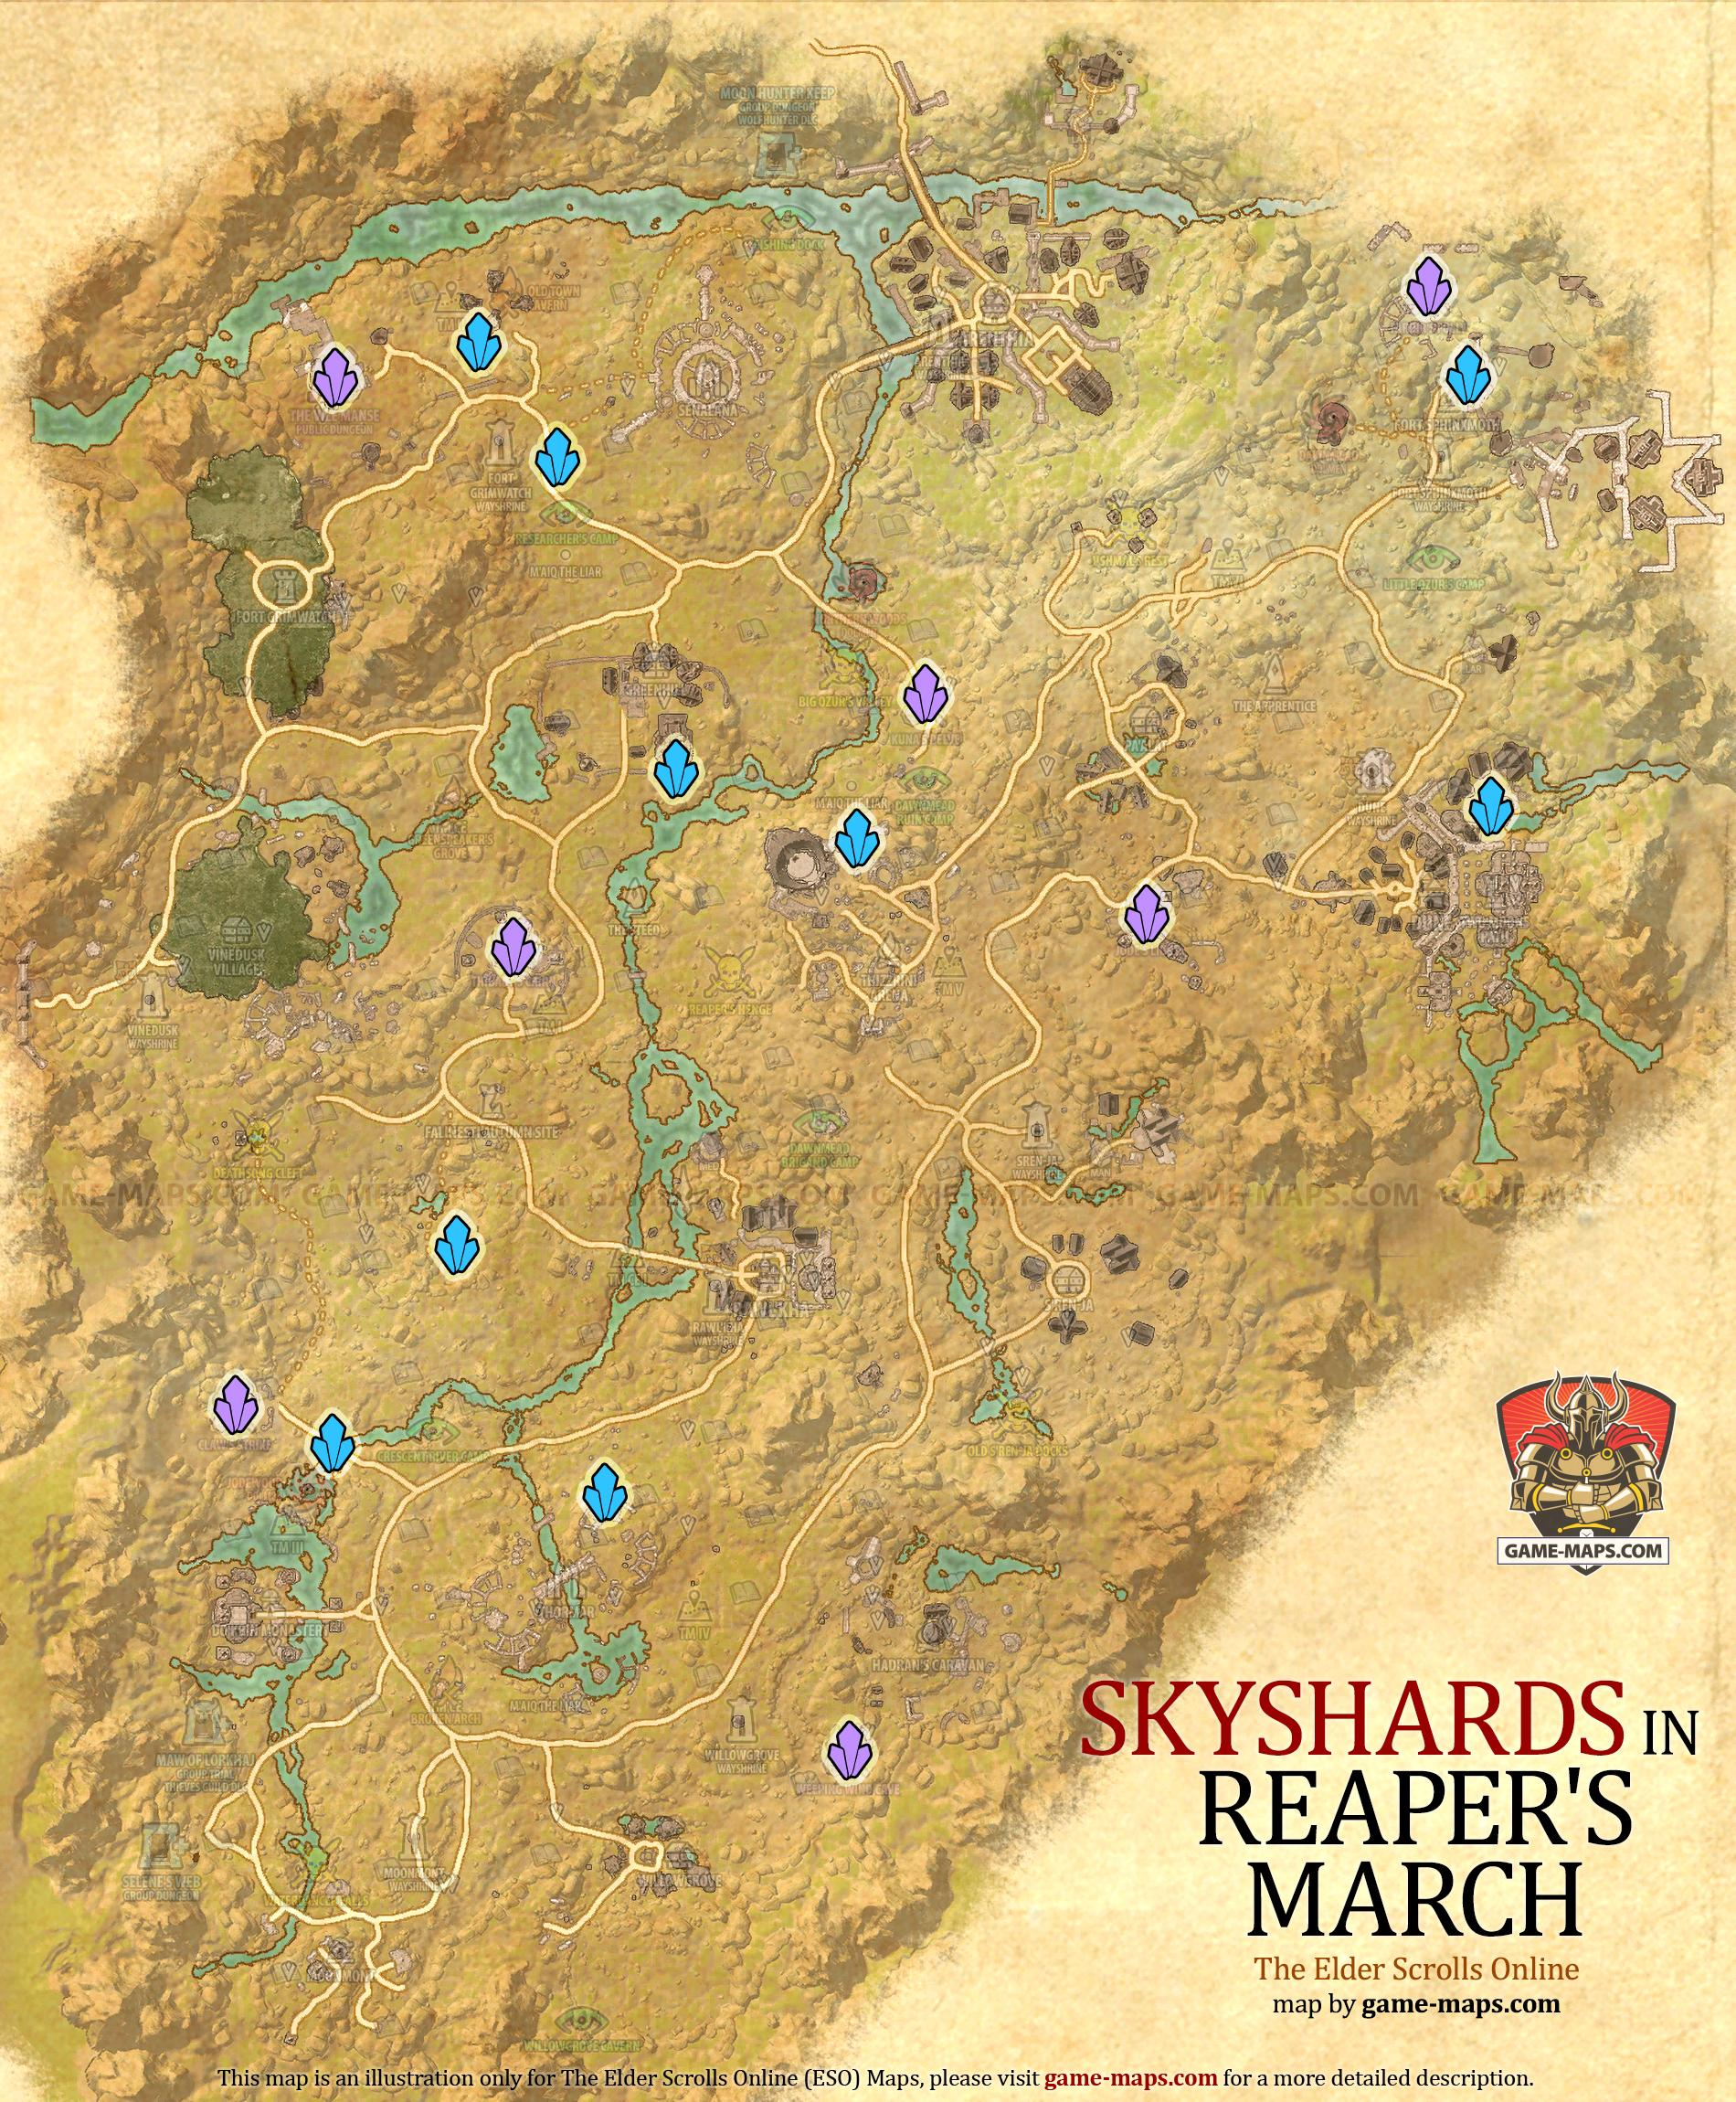 Malabal Tor Map : malabal, Reaper's, March, Skyshards, Location, Game-maps.com